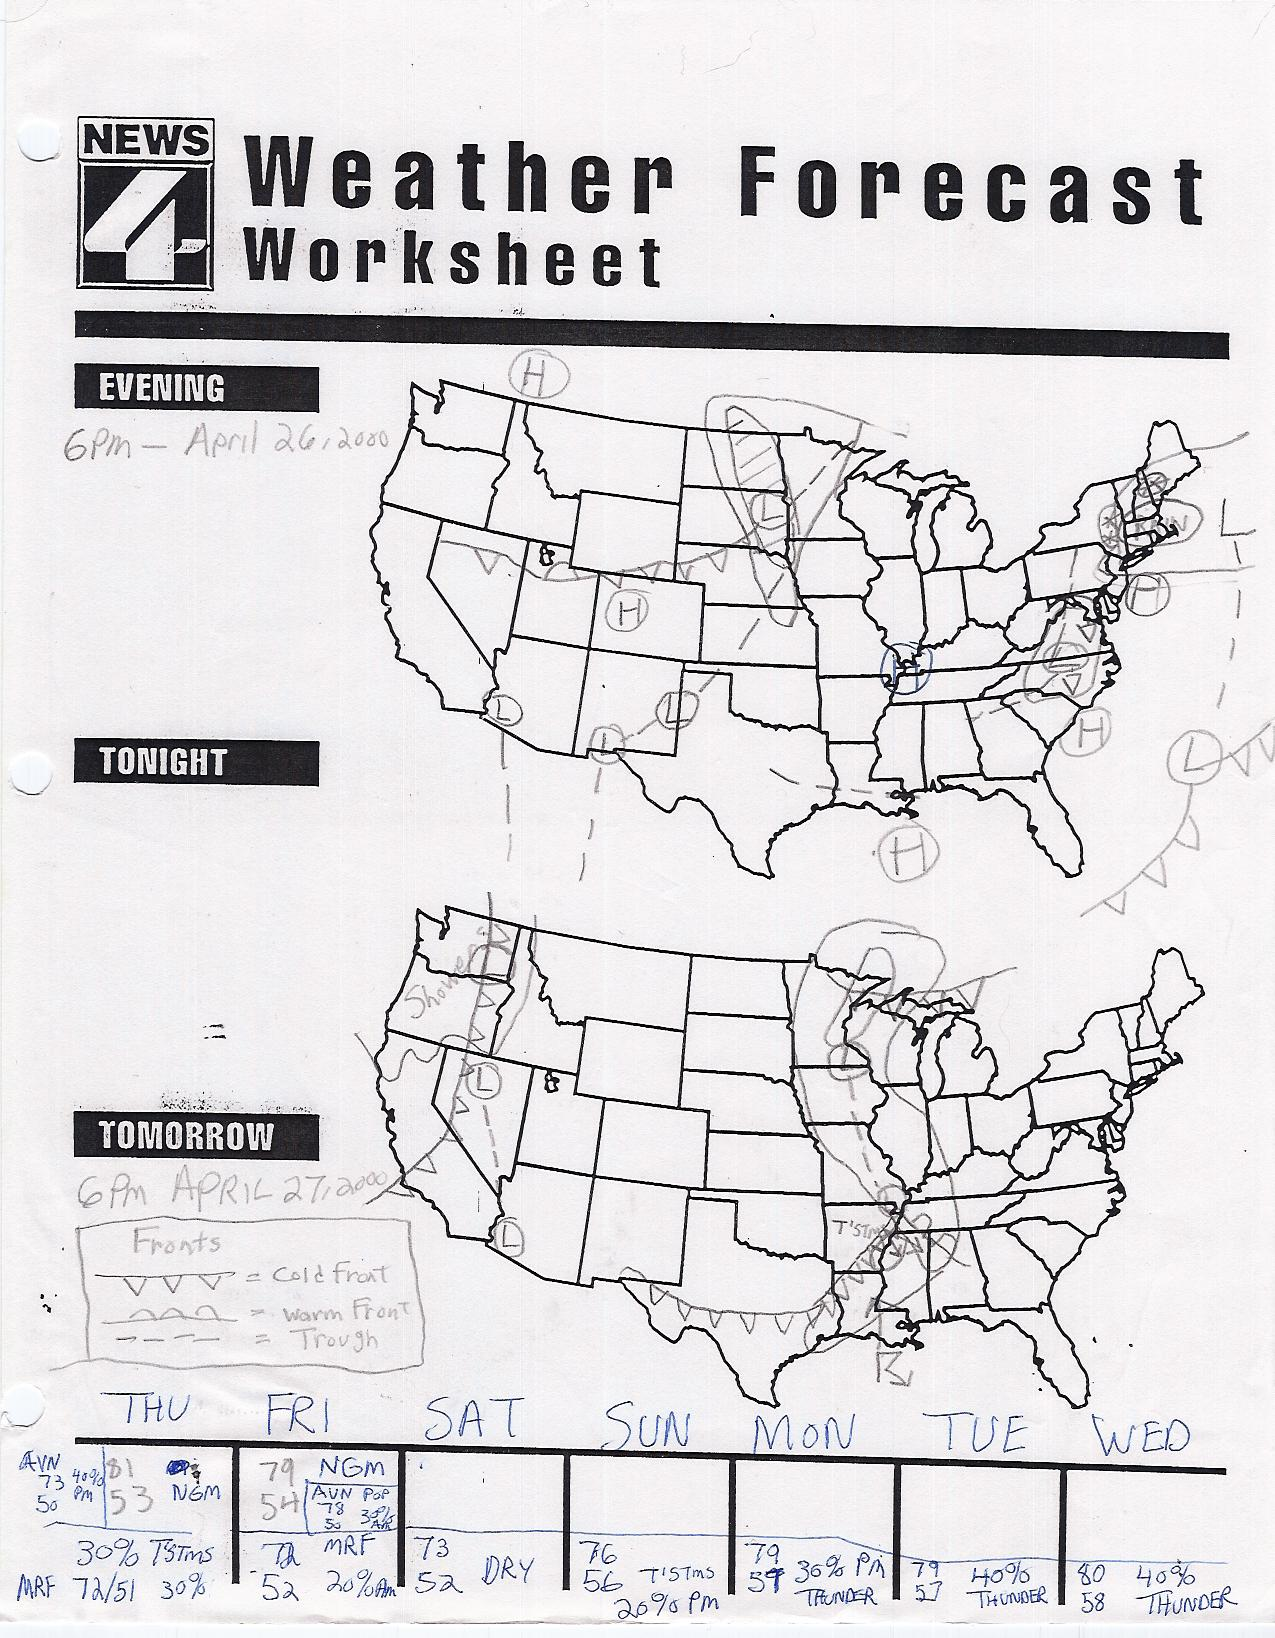 worksheet Weather Map Symbols Worksheet weather map symbols worksheet abitlikethis for kids worksheet